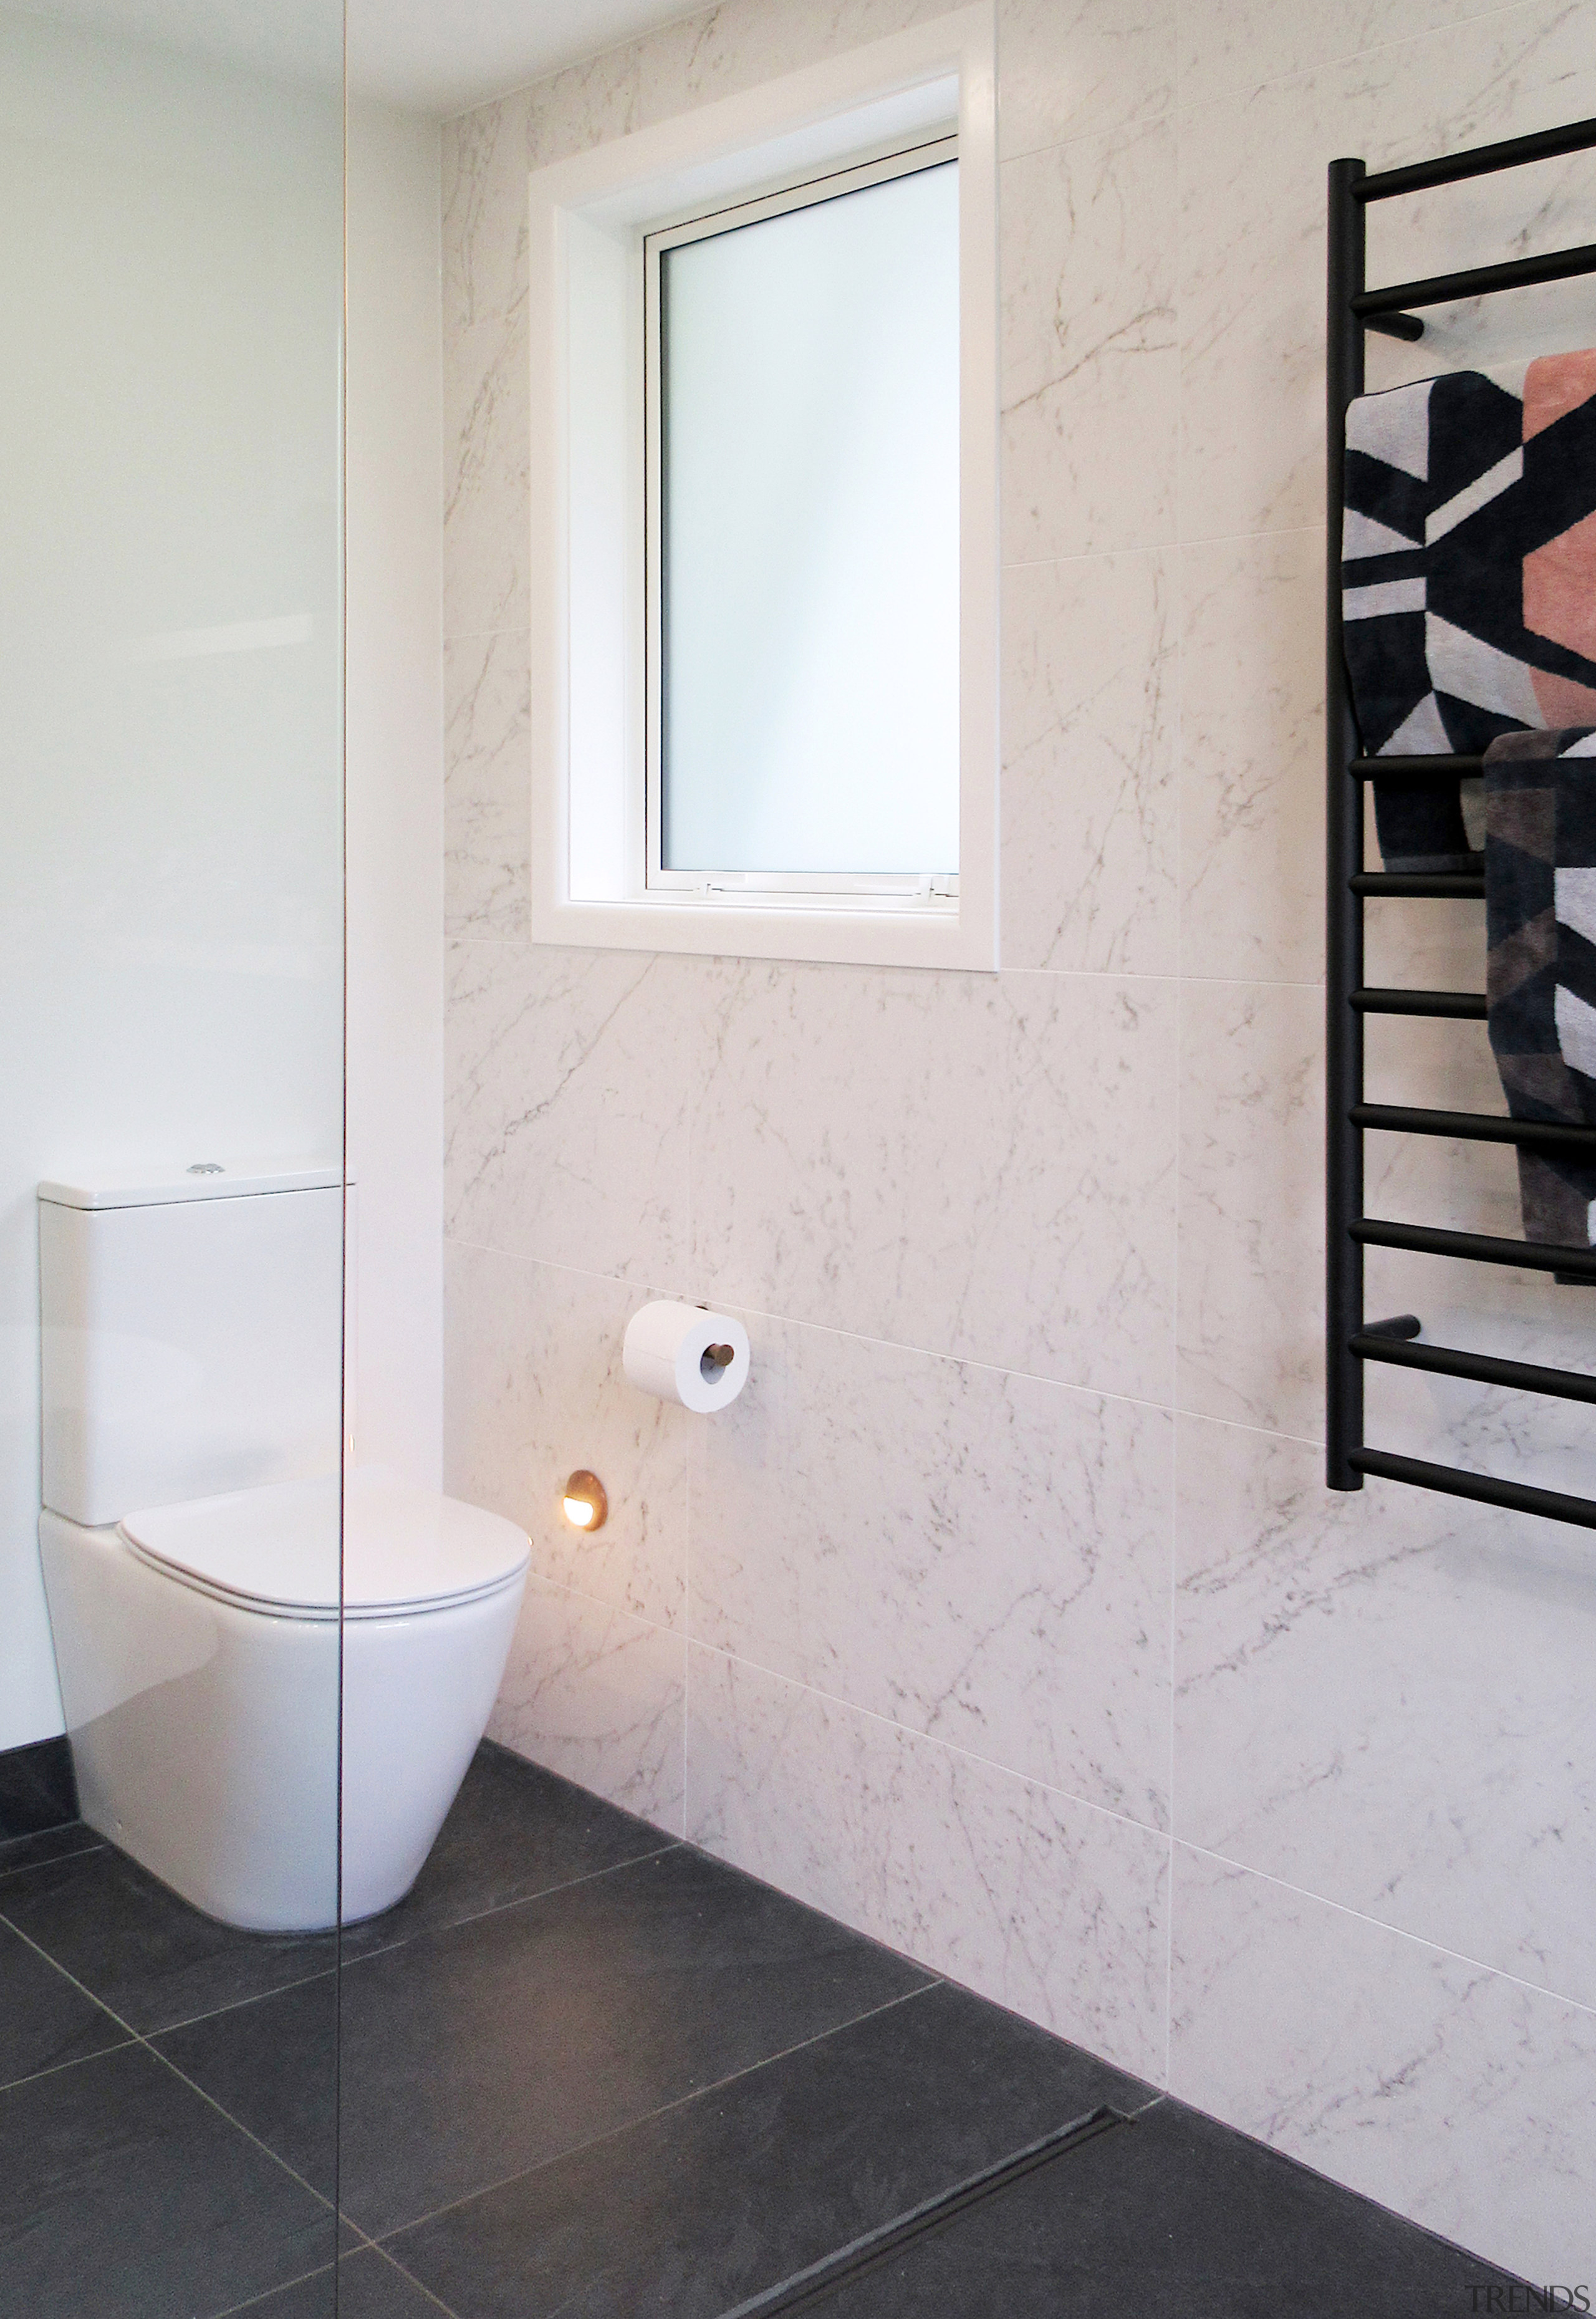 Positioned on a white painted wall, the toilet gray